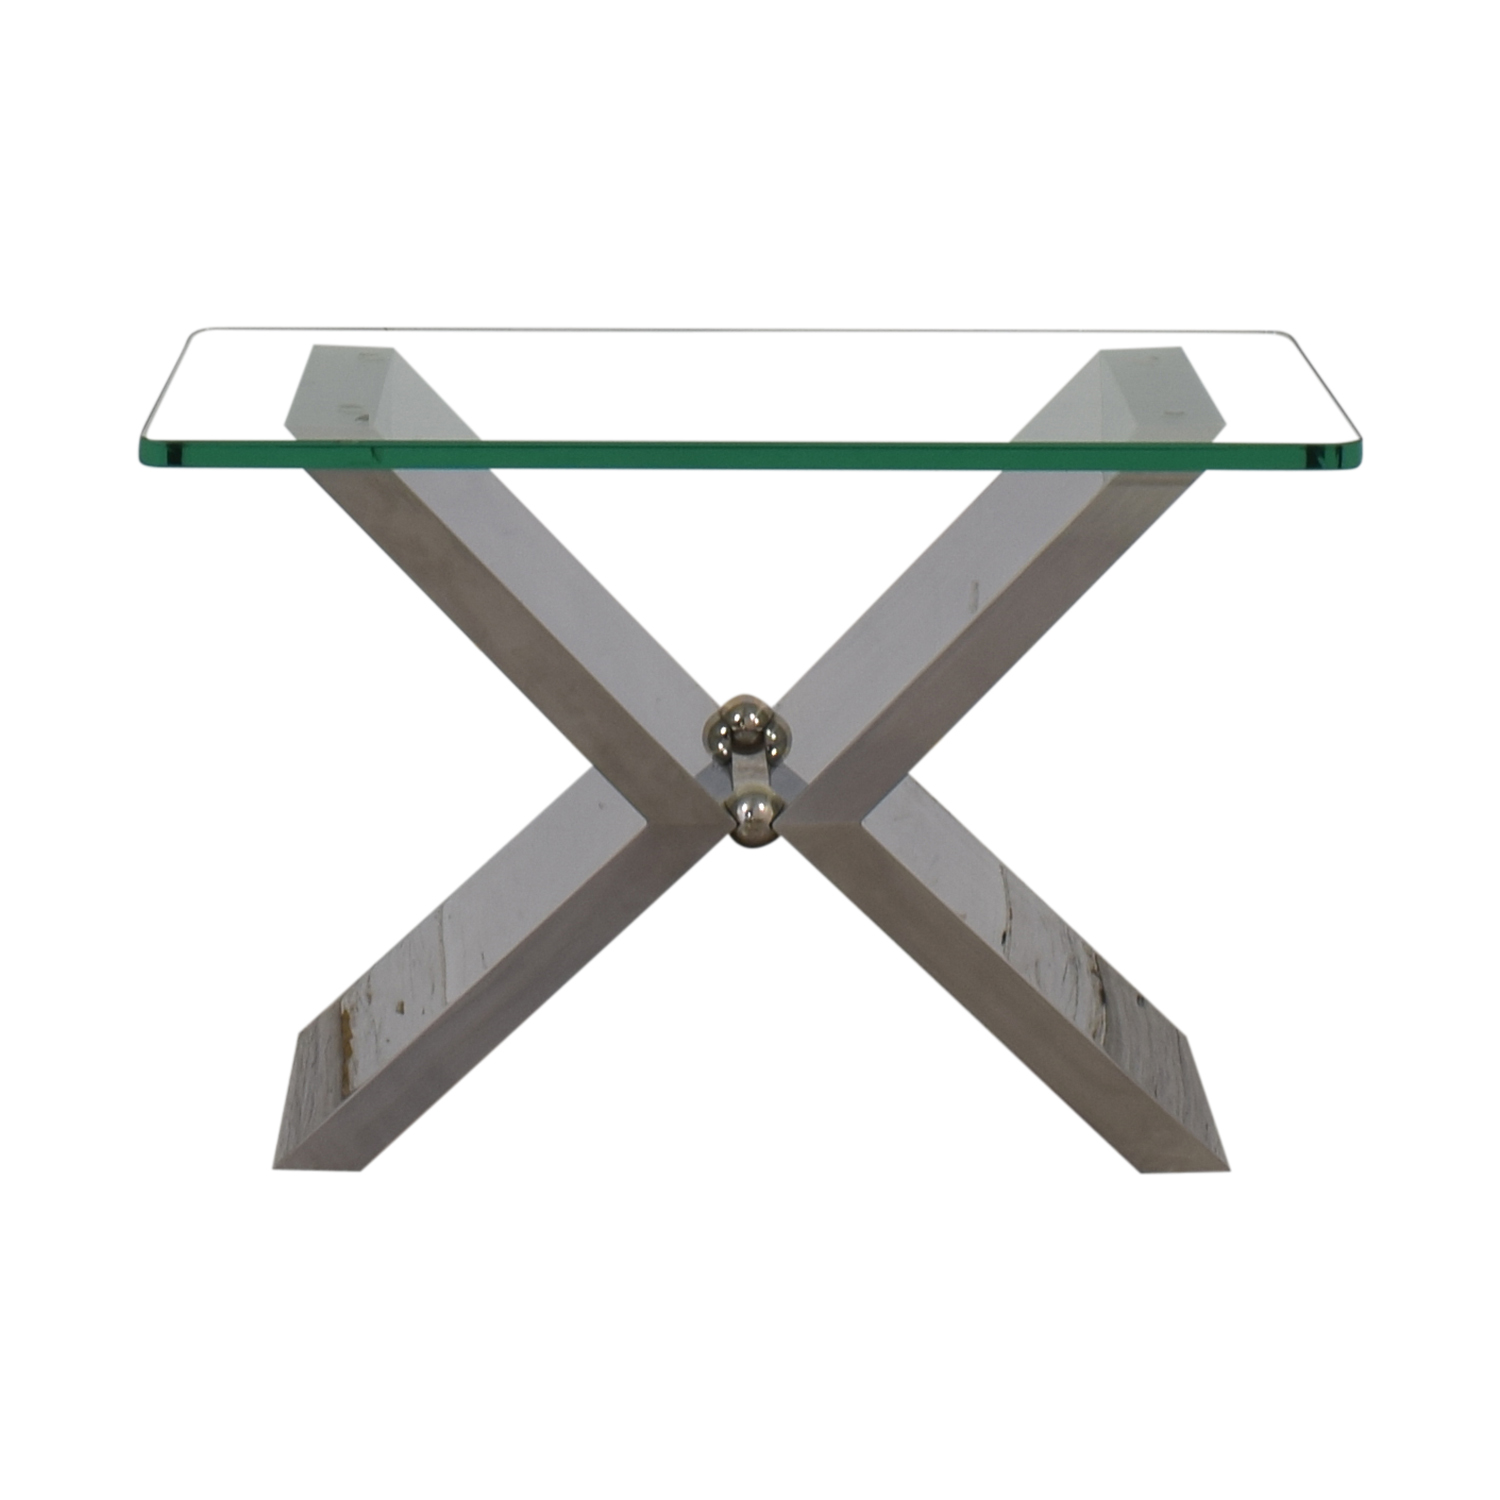 J Robert Scott J Robert Scott Modern Glass and Steel Side Table second hand